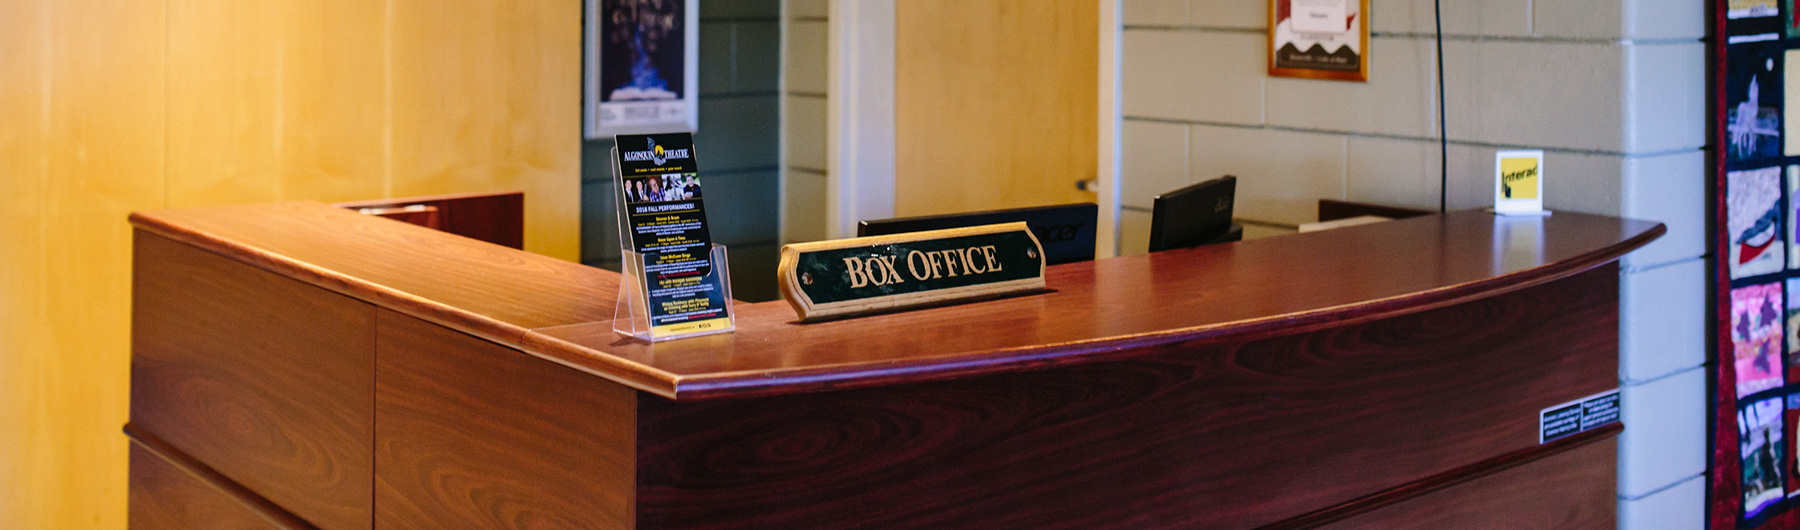 image of the desk with a sign that says Box Office